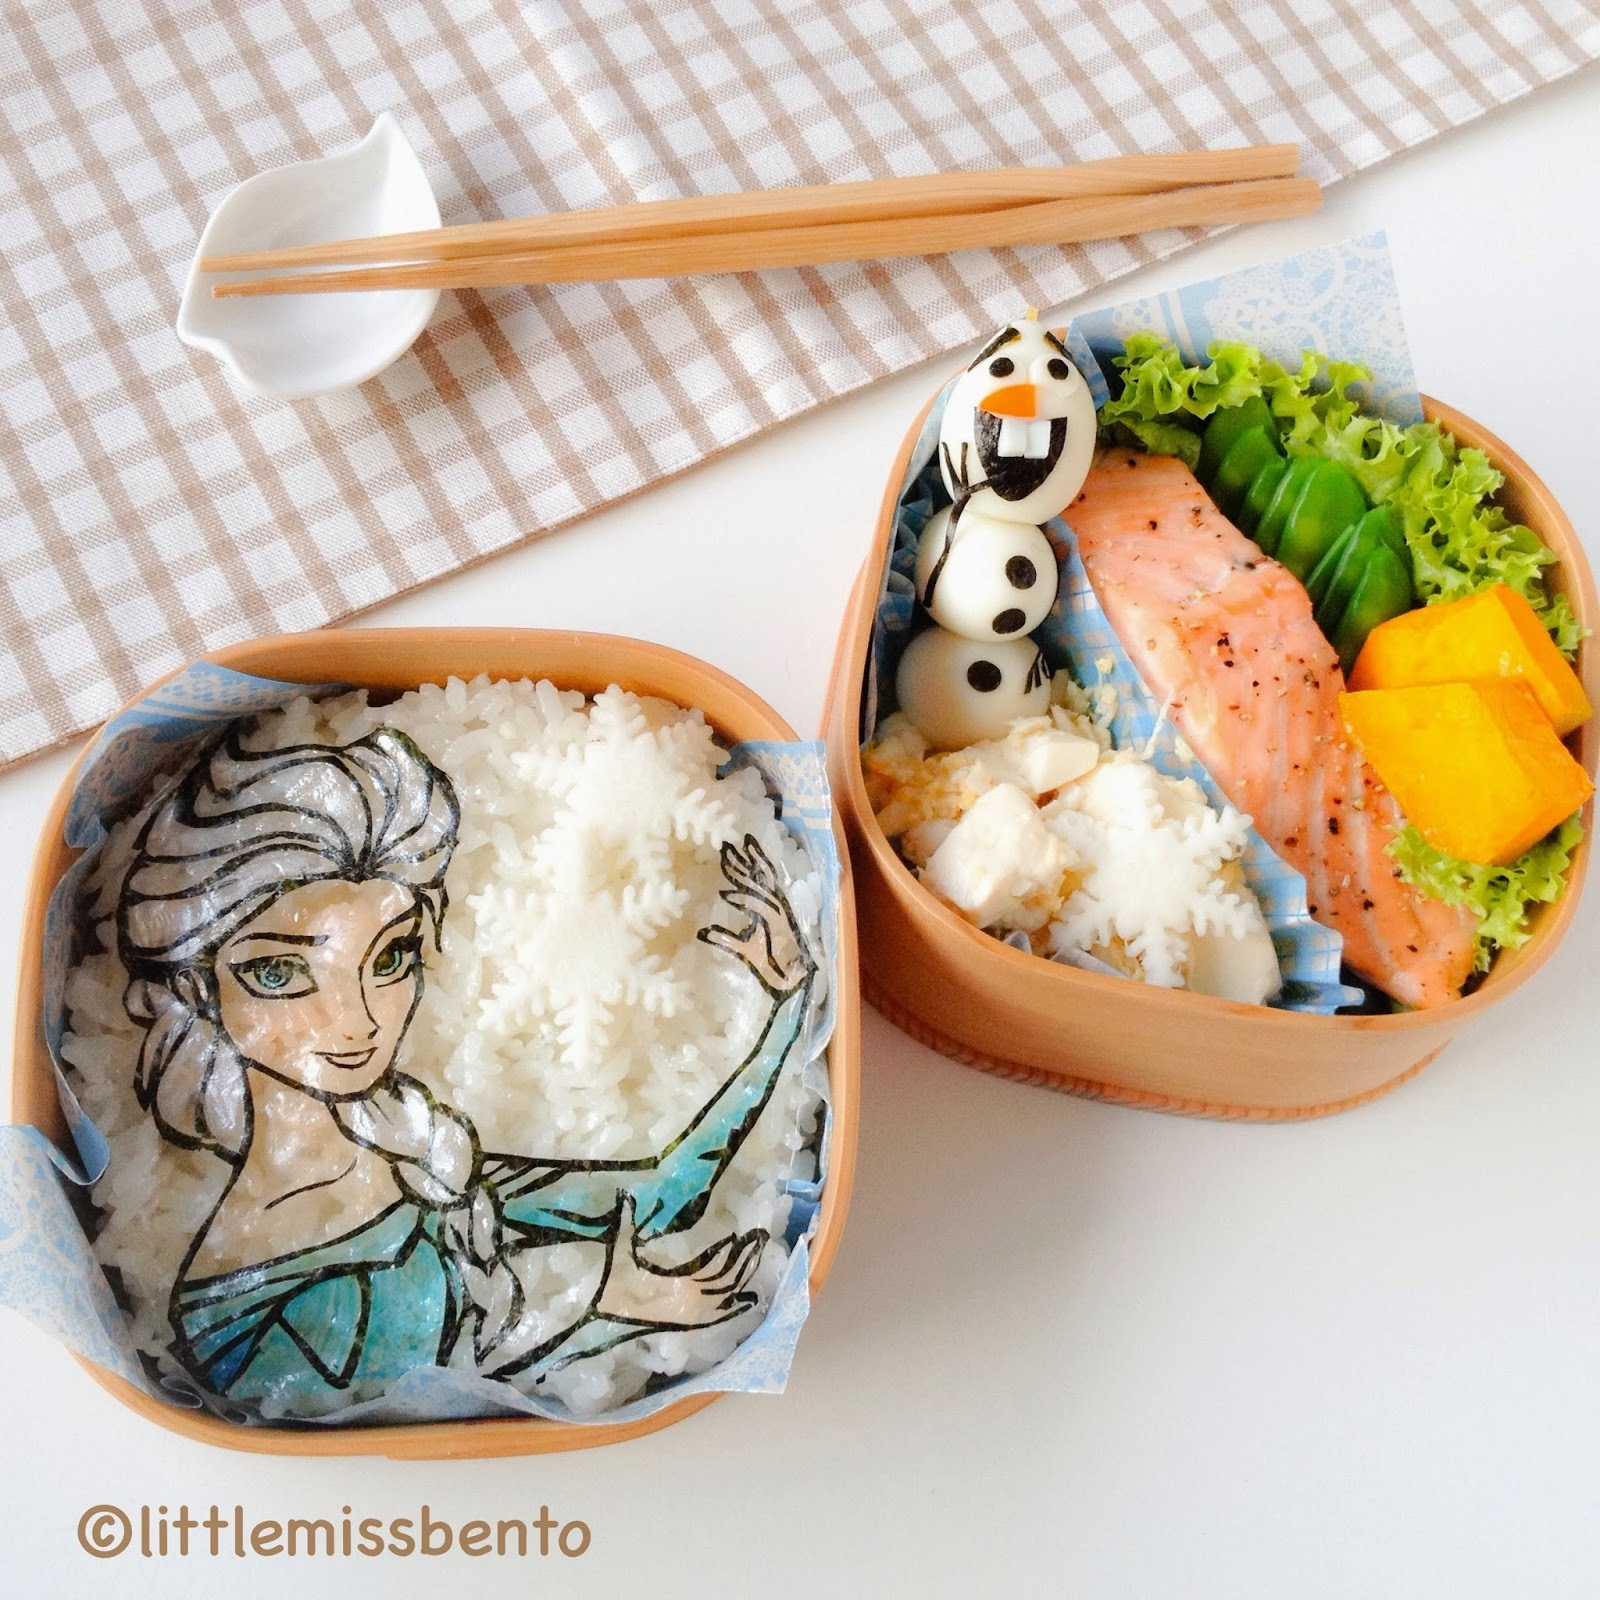 disney bento boxes amazing other touringplans discussion forums. Black Bedroom Furniture Sets. Home Design Ideas